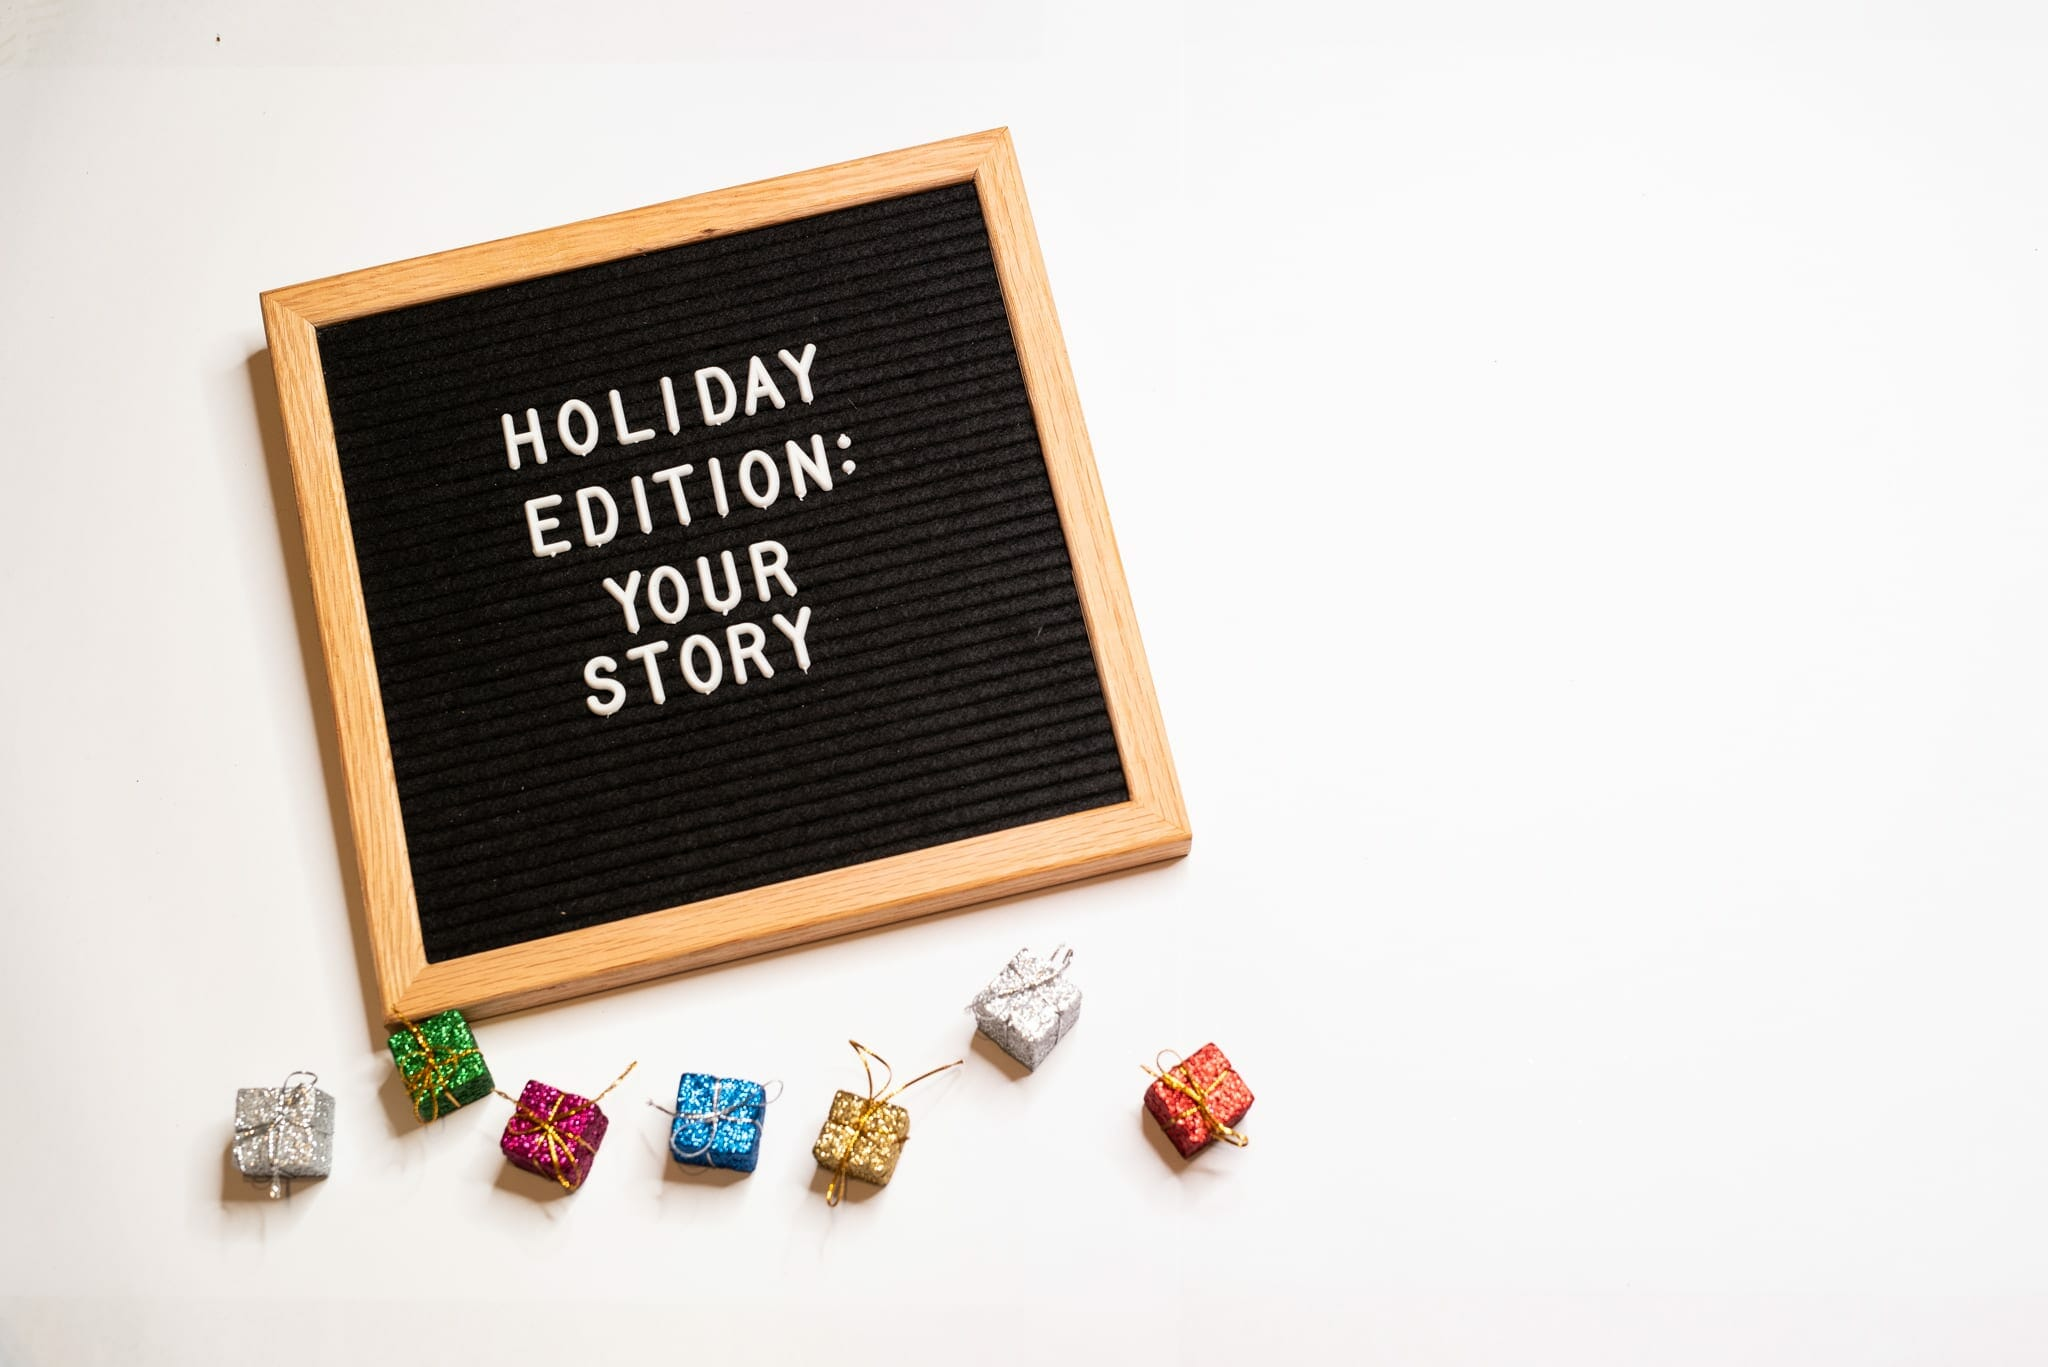 Holiday Edition: Your Story